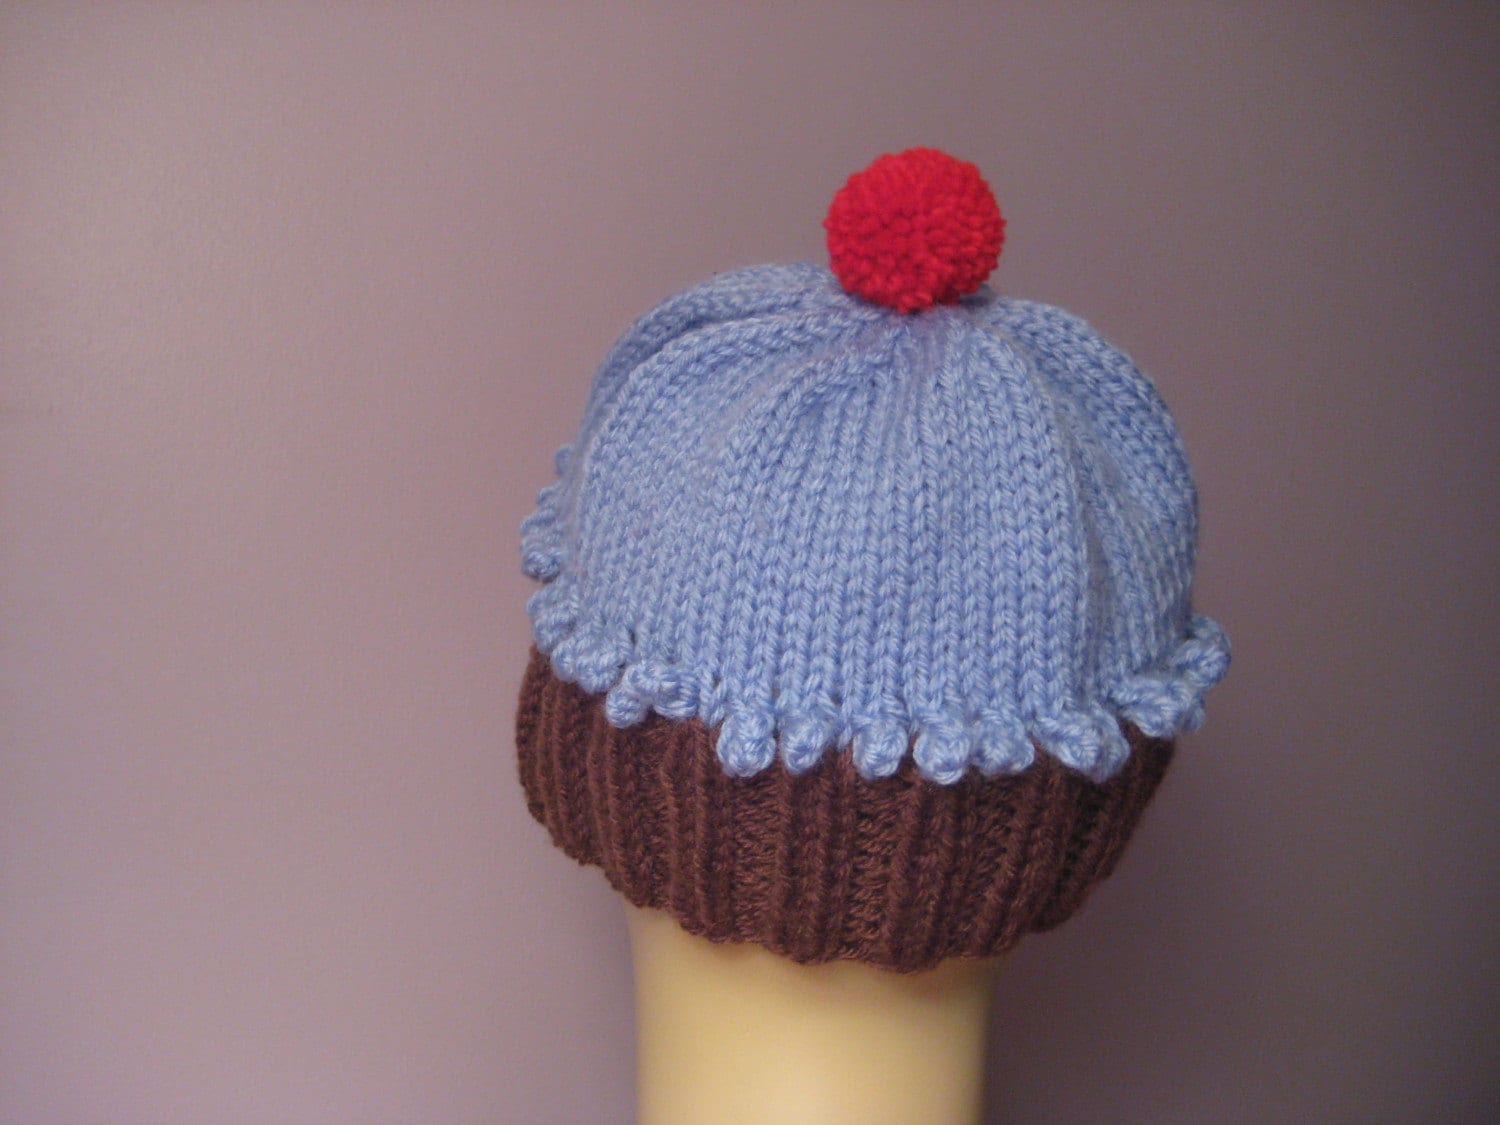 Blue Cupcake Hat with a Cherry on Top